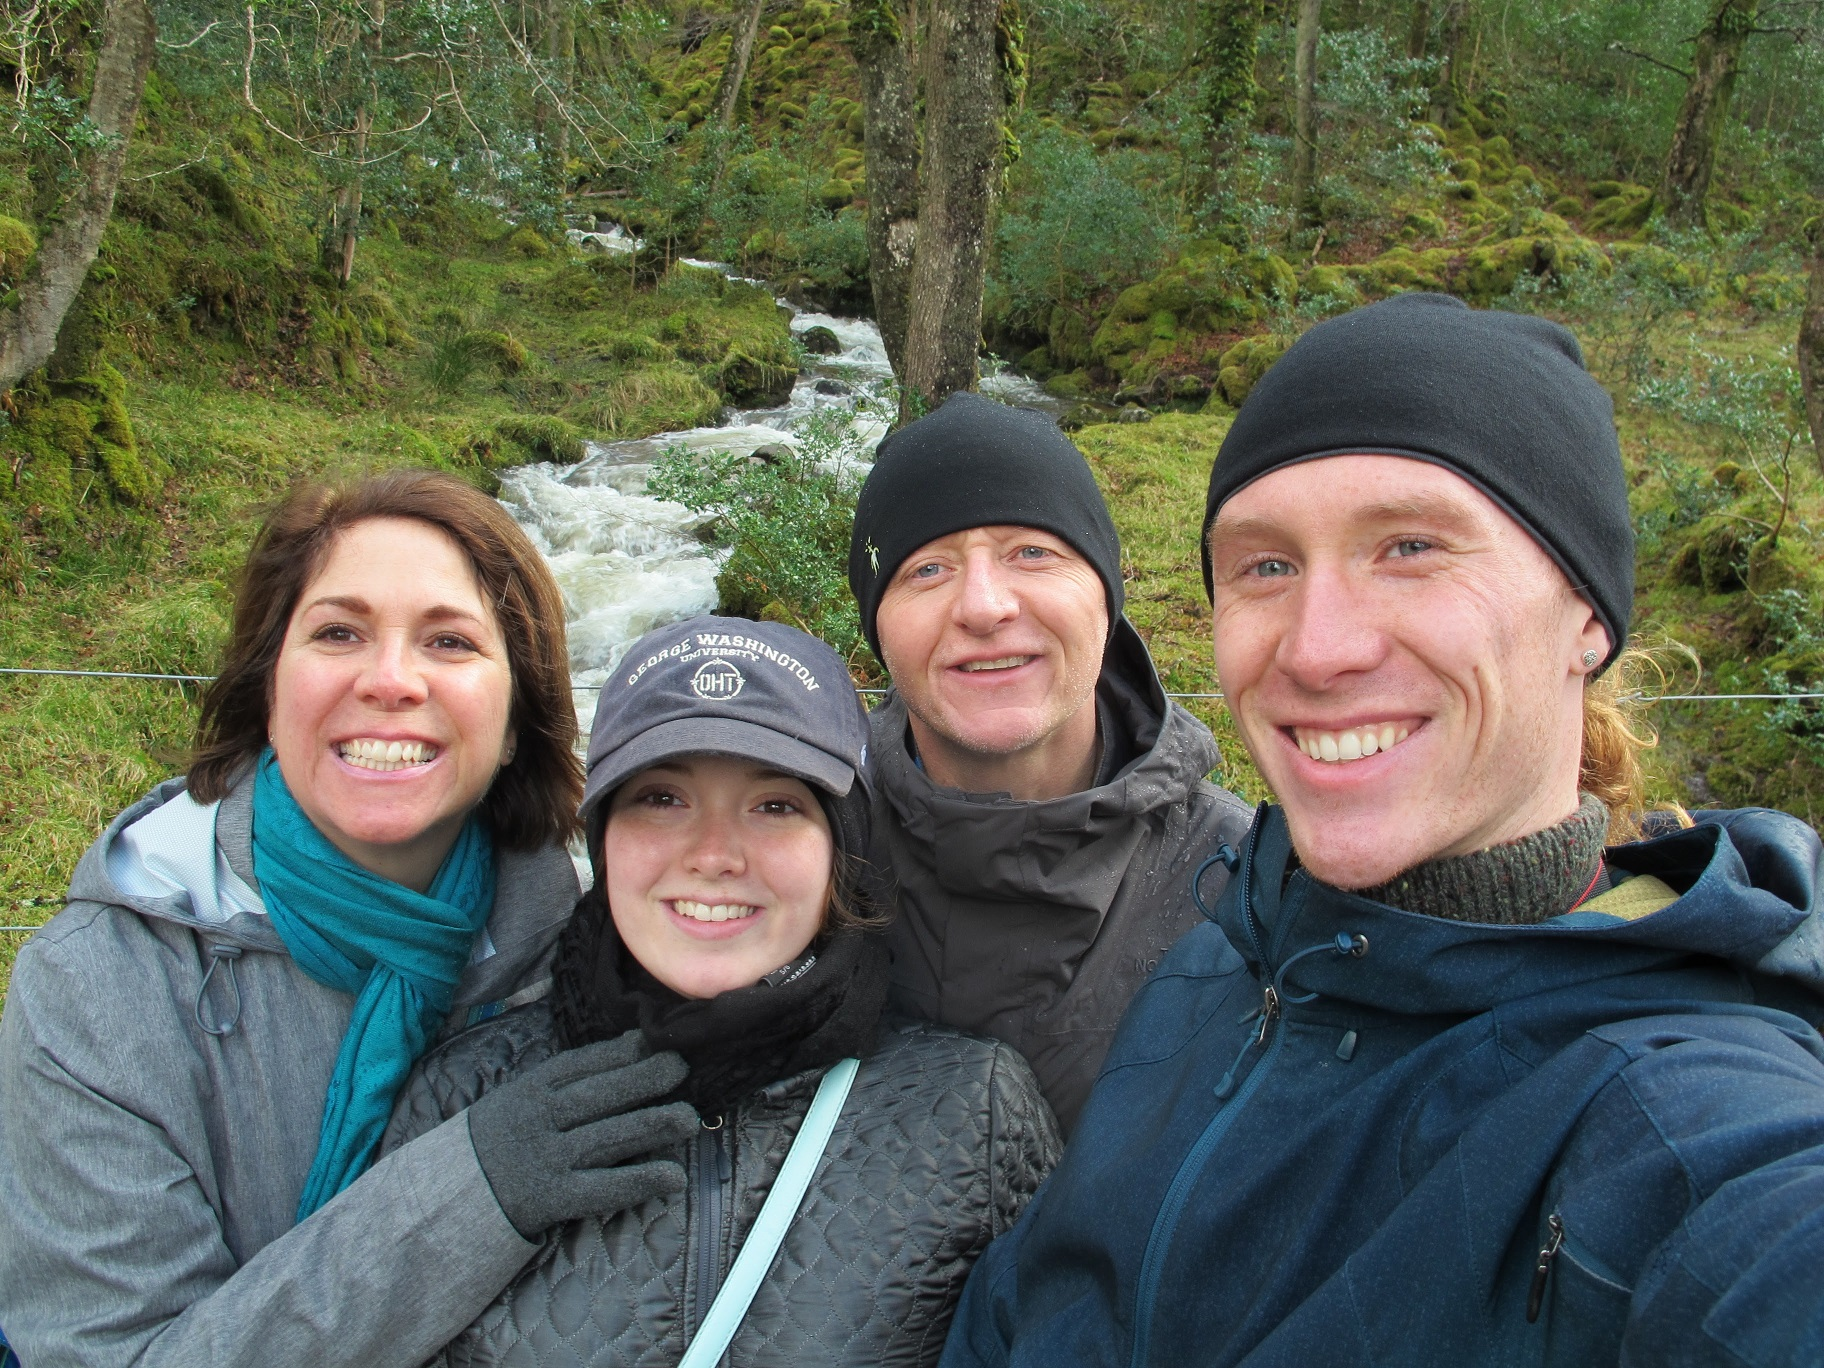 At Glenveagh National Park on our family trip to Donegal in March 2016. Meredtih, Aine, myself (Stuart), and Liam.